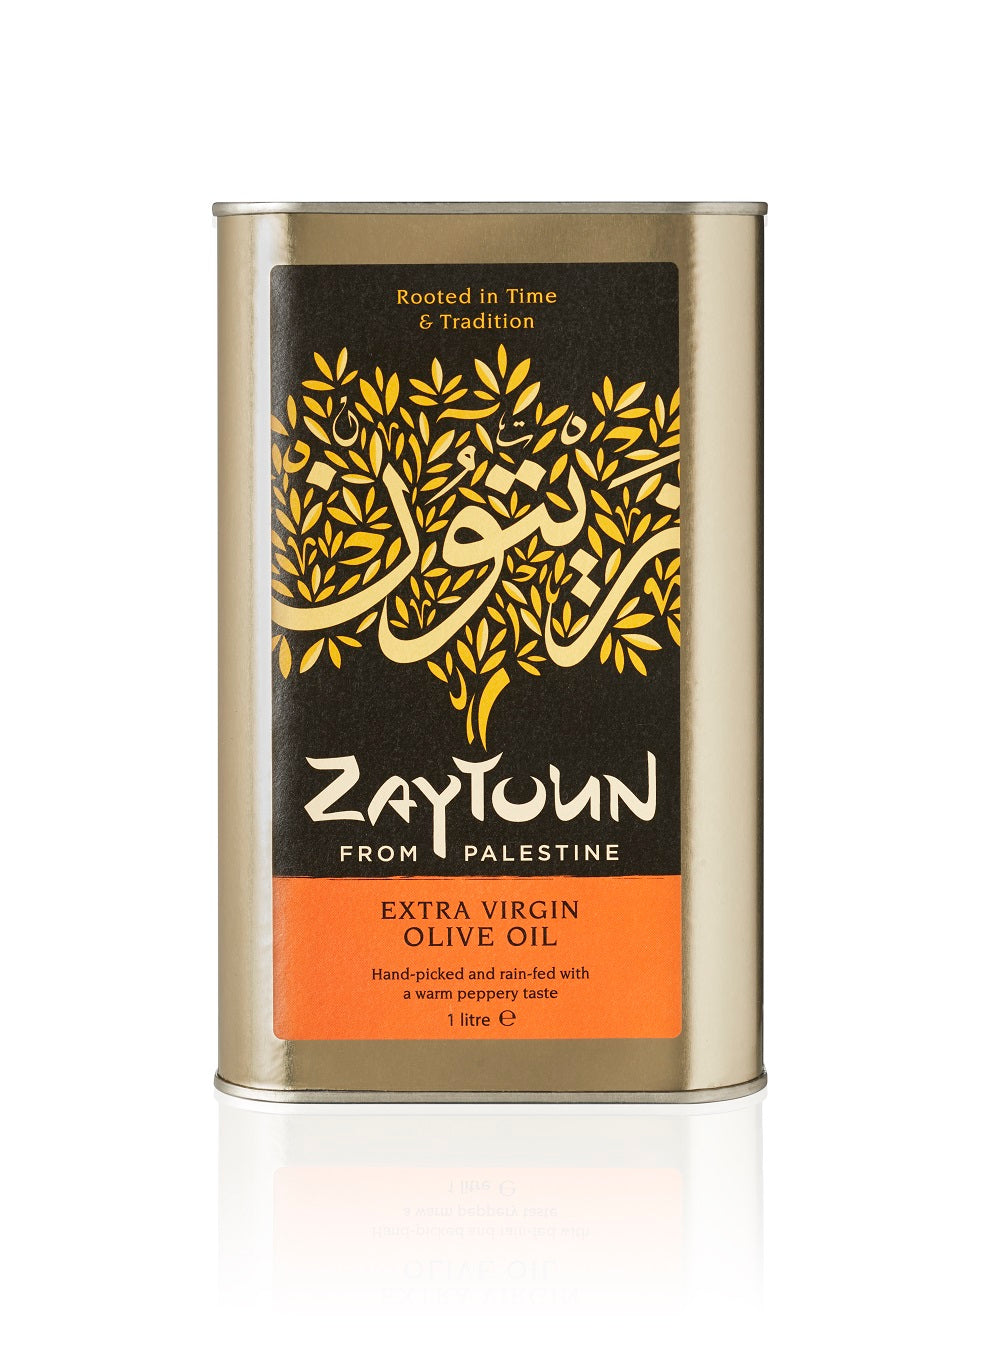 Zaytoun Extra Virgin Olive Oil Case of 6 x 1 litre tins (KT3-4)